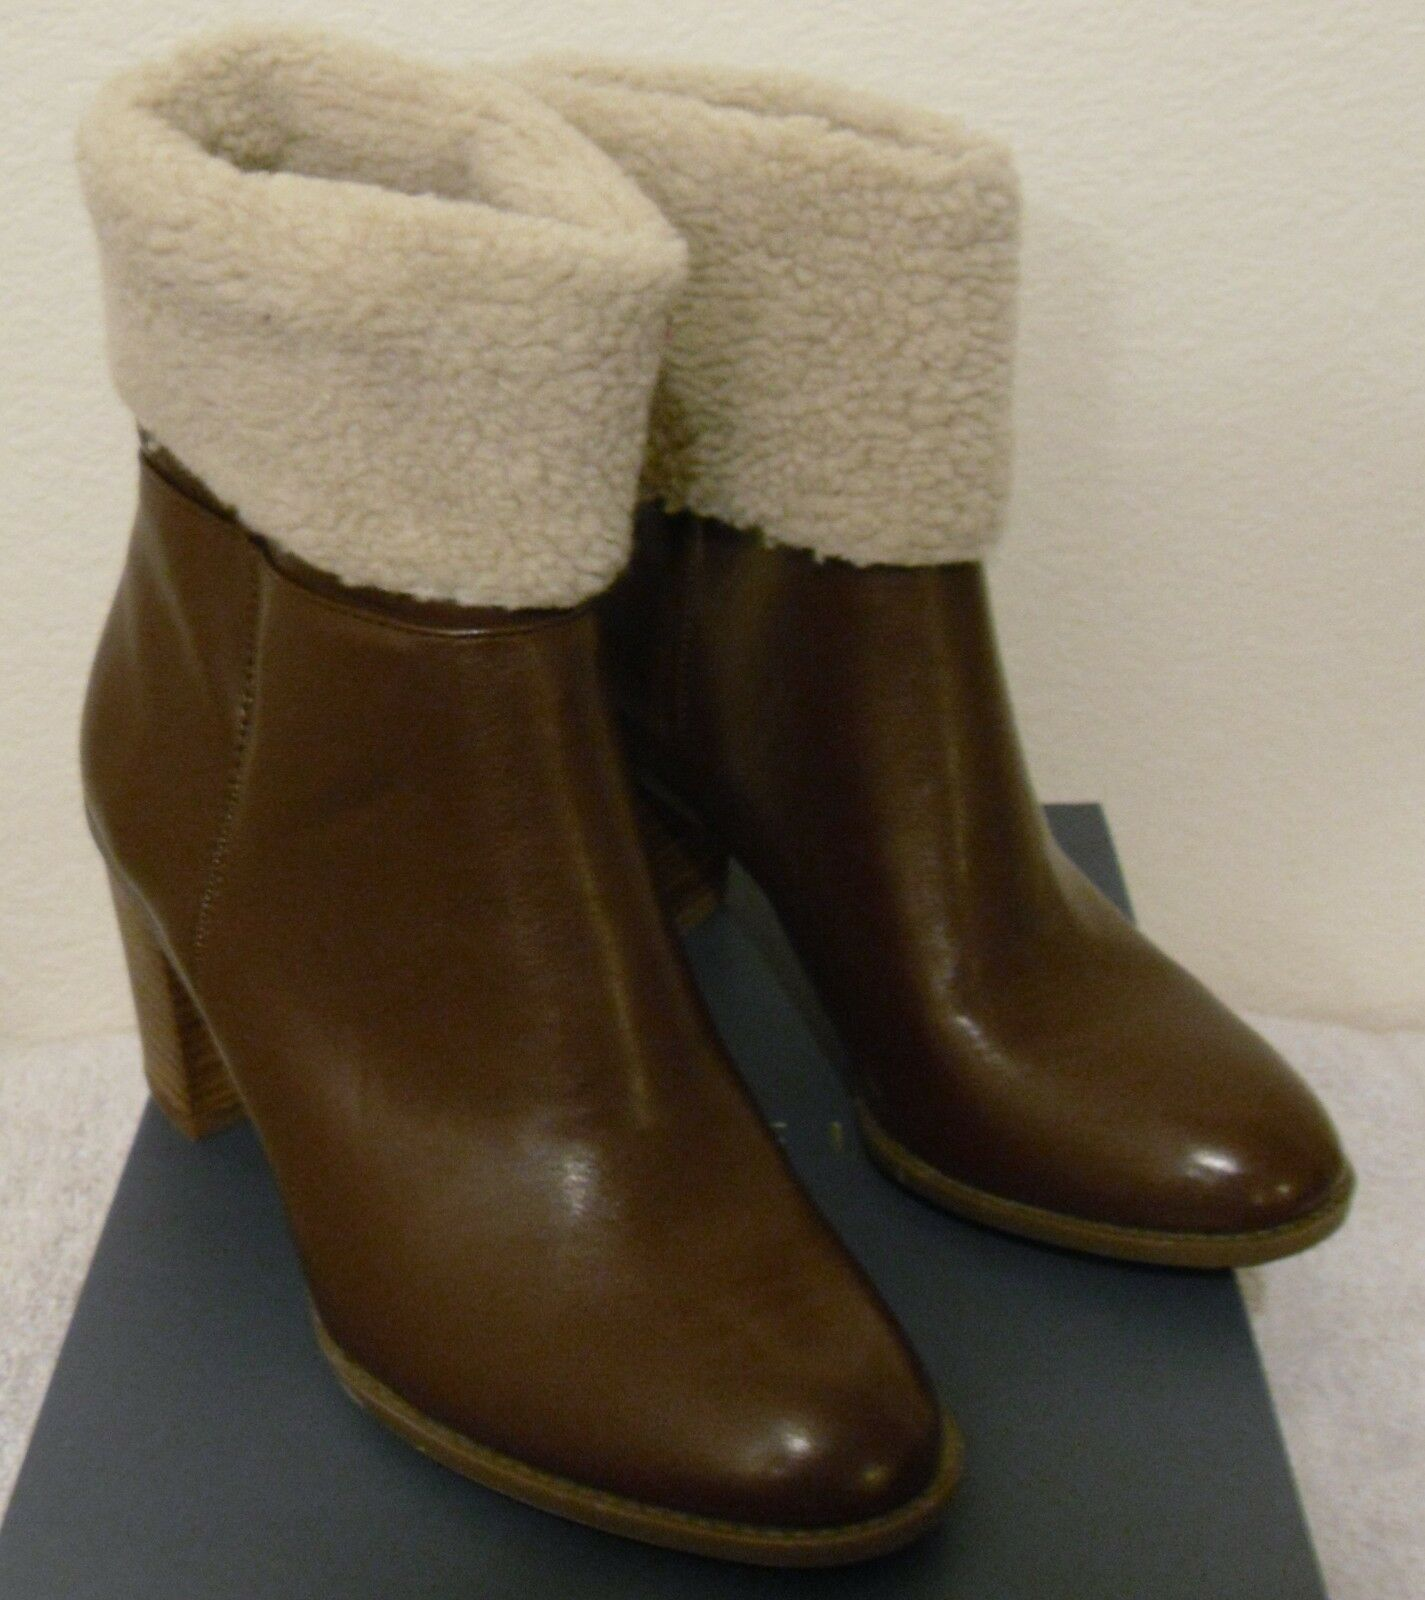 NIB Nickels Elise Womens Faux Fur Collar Ankle Boots 8 Cognac MSRP